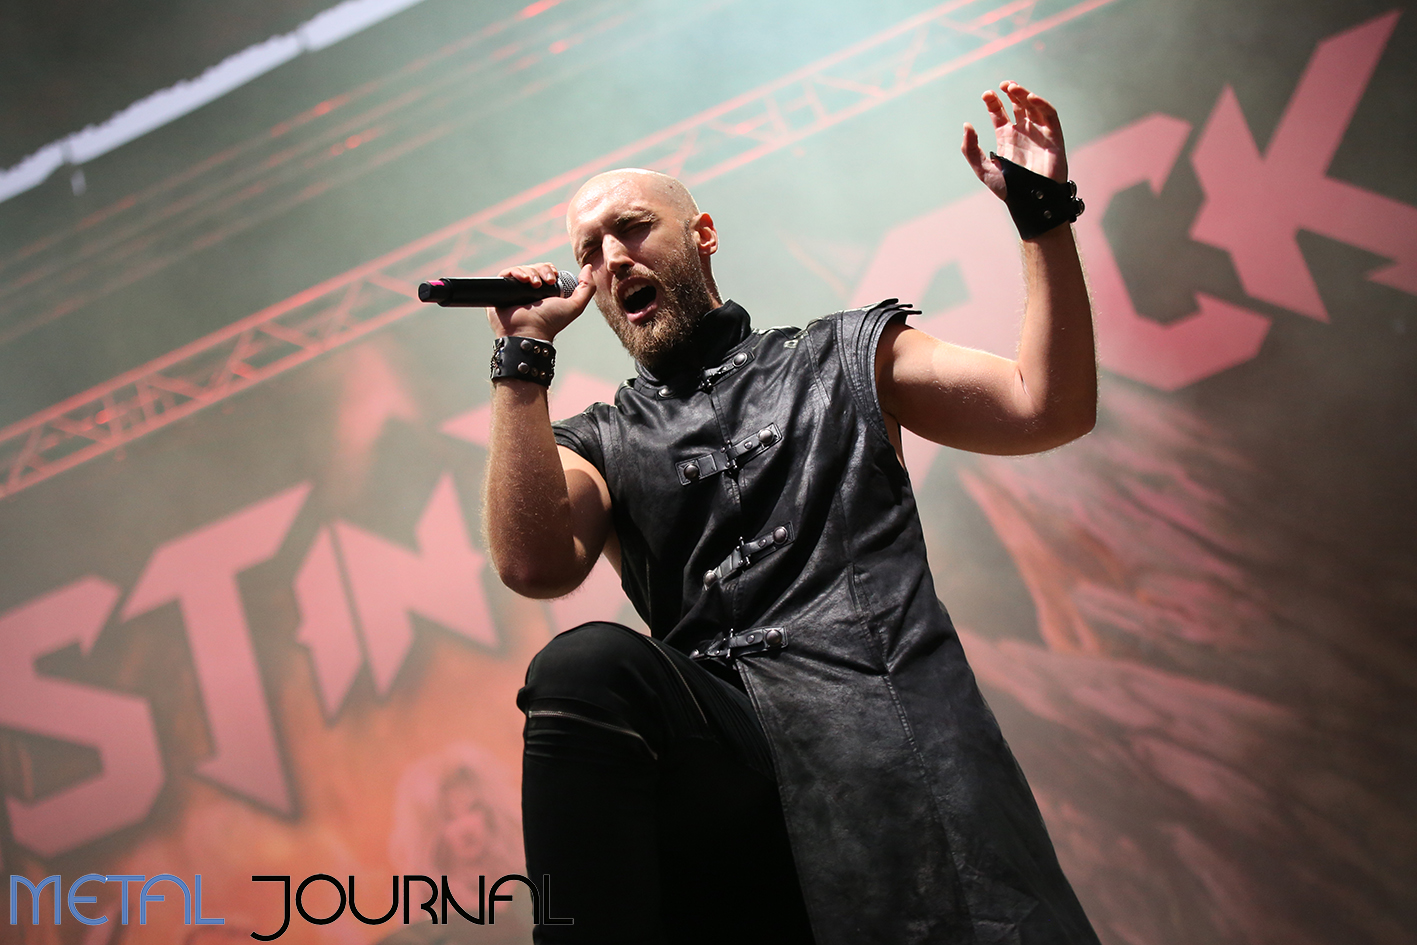 beast in black - leyendas del rock 2019 metal journal pic 1